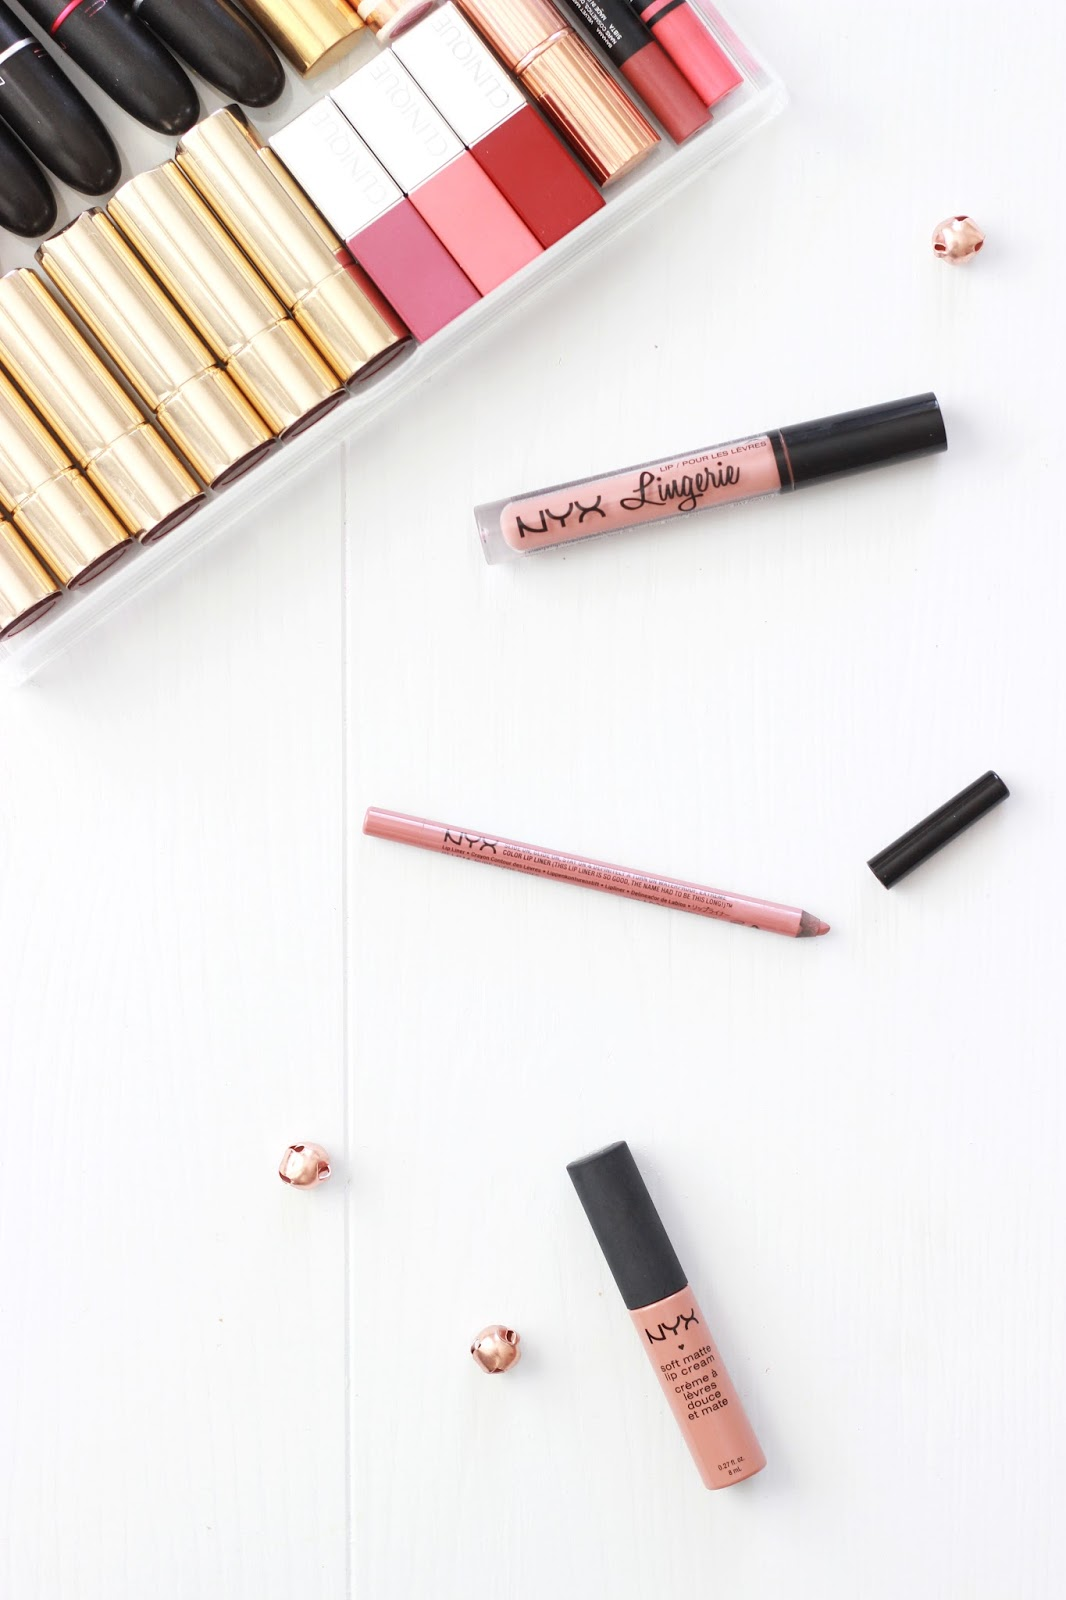 NYX Lip Lingerie, NYX Slide On Lip Pencil, NYX Soft Matte Lip Creams